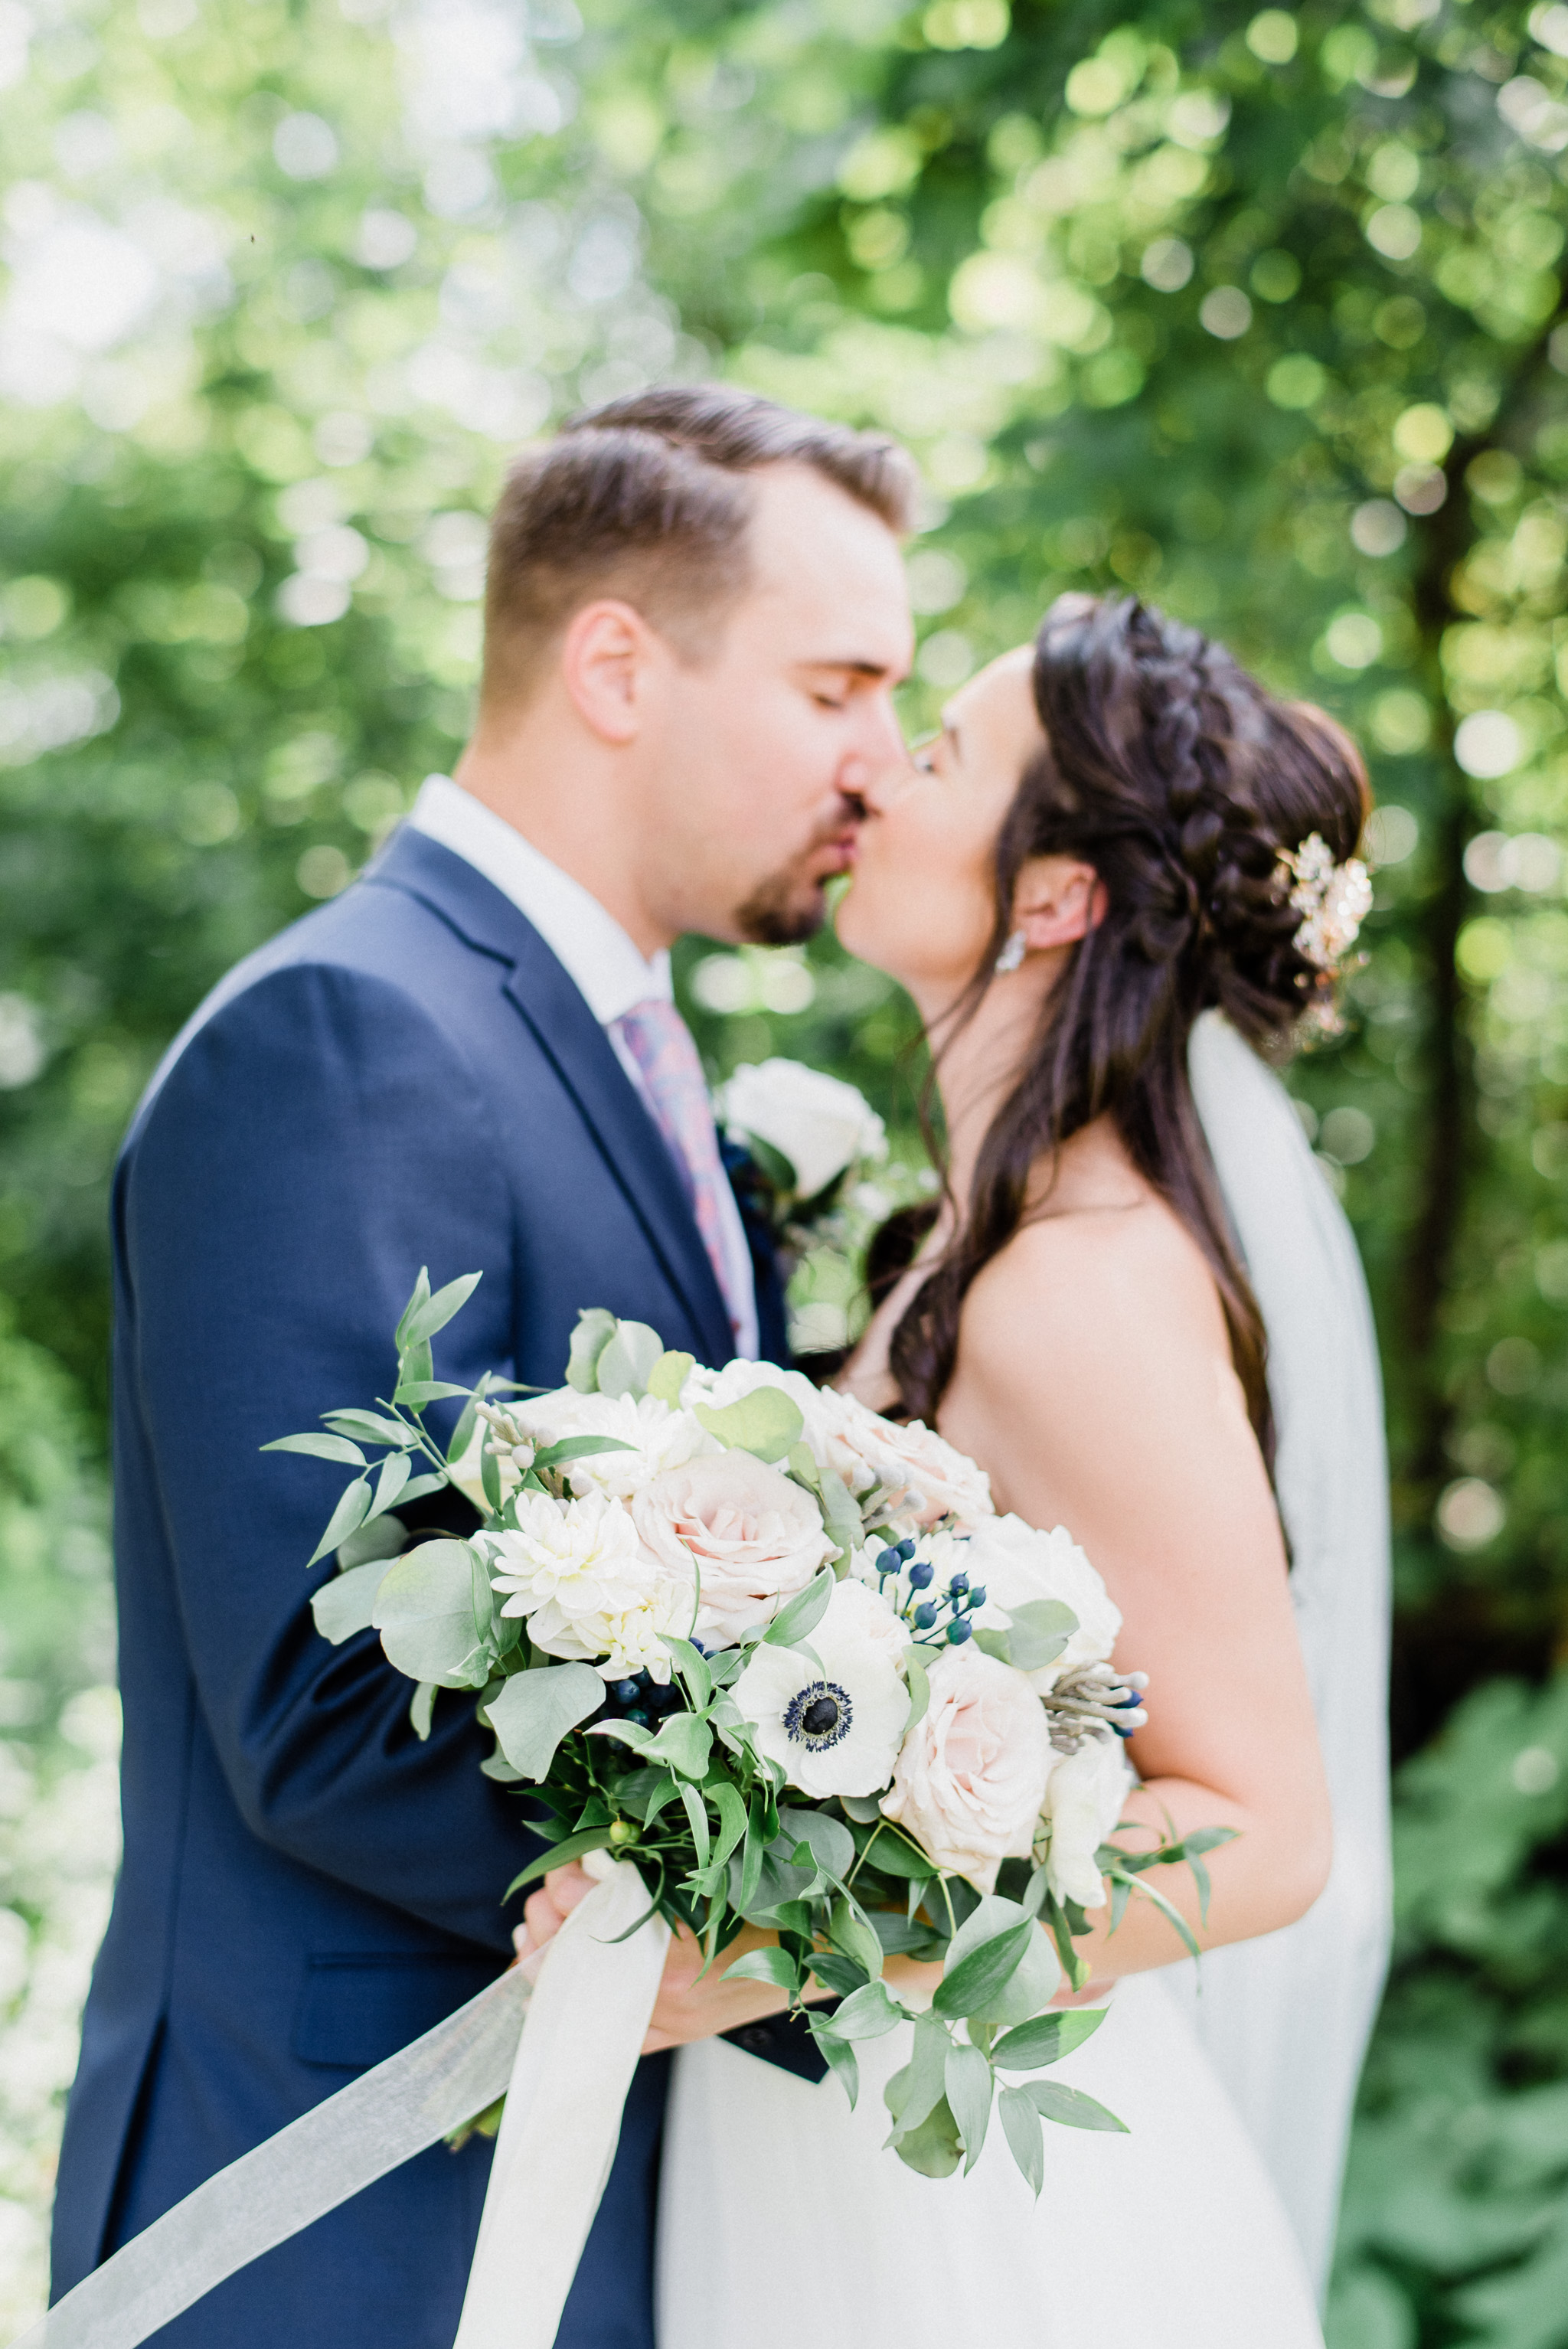 Summertime Wedding at Holland Marsh Wineries by Jenn Kavanagh Photography